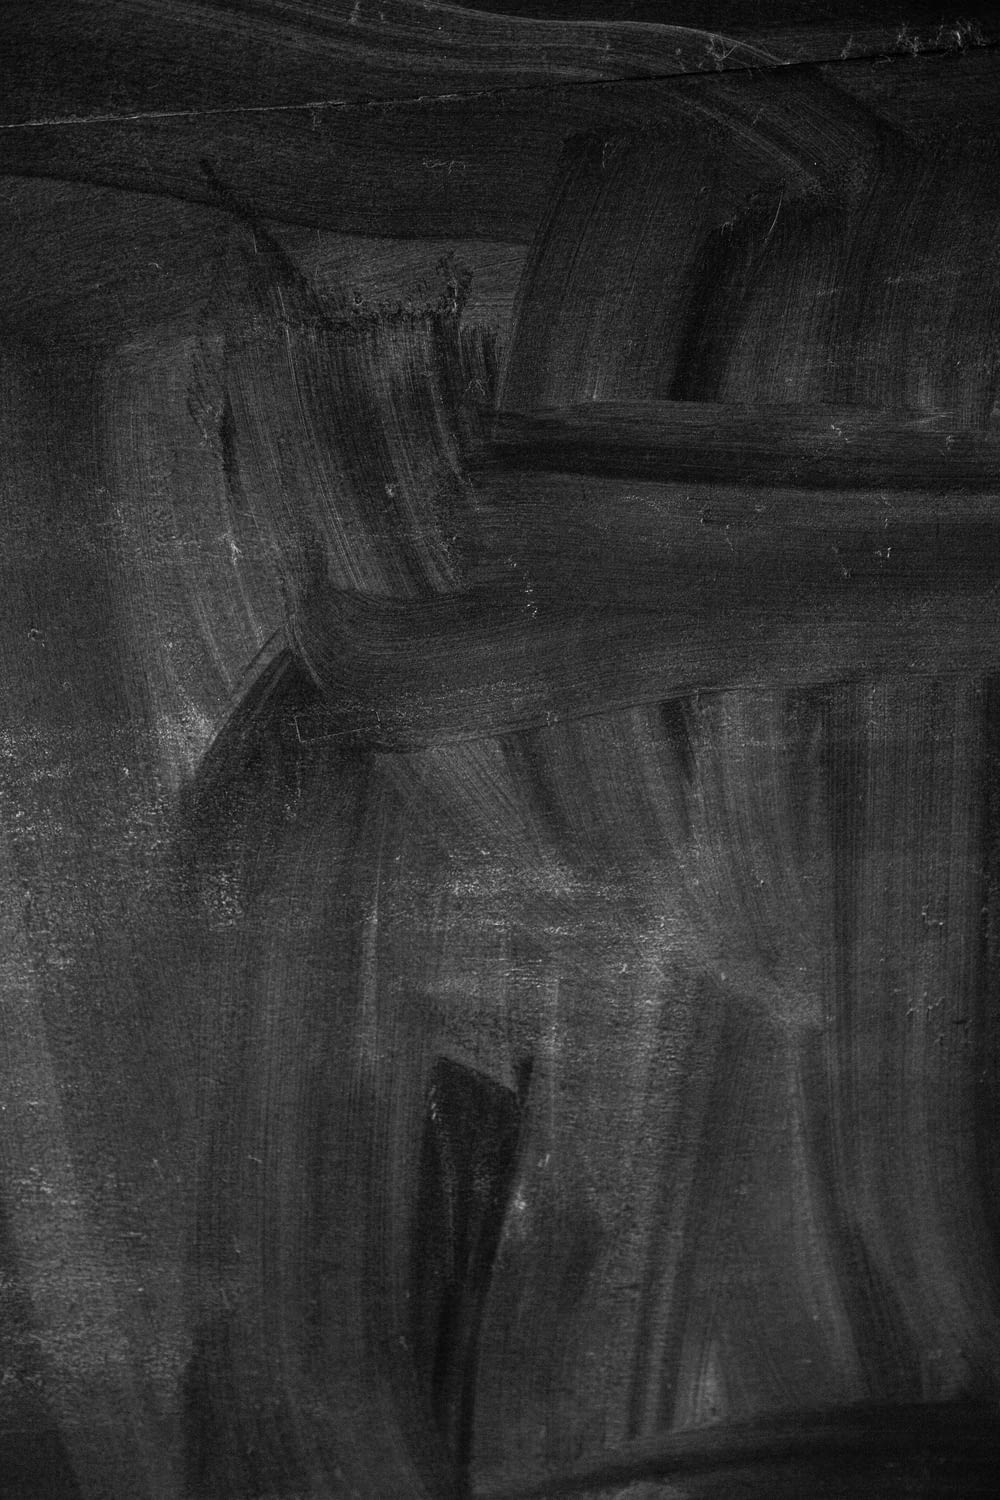 black and gray abstract painting